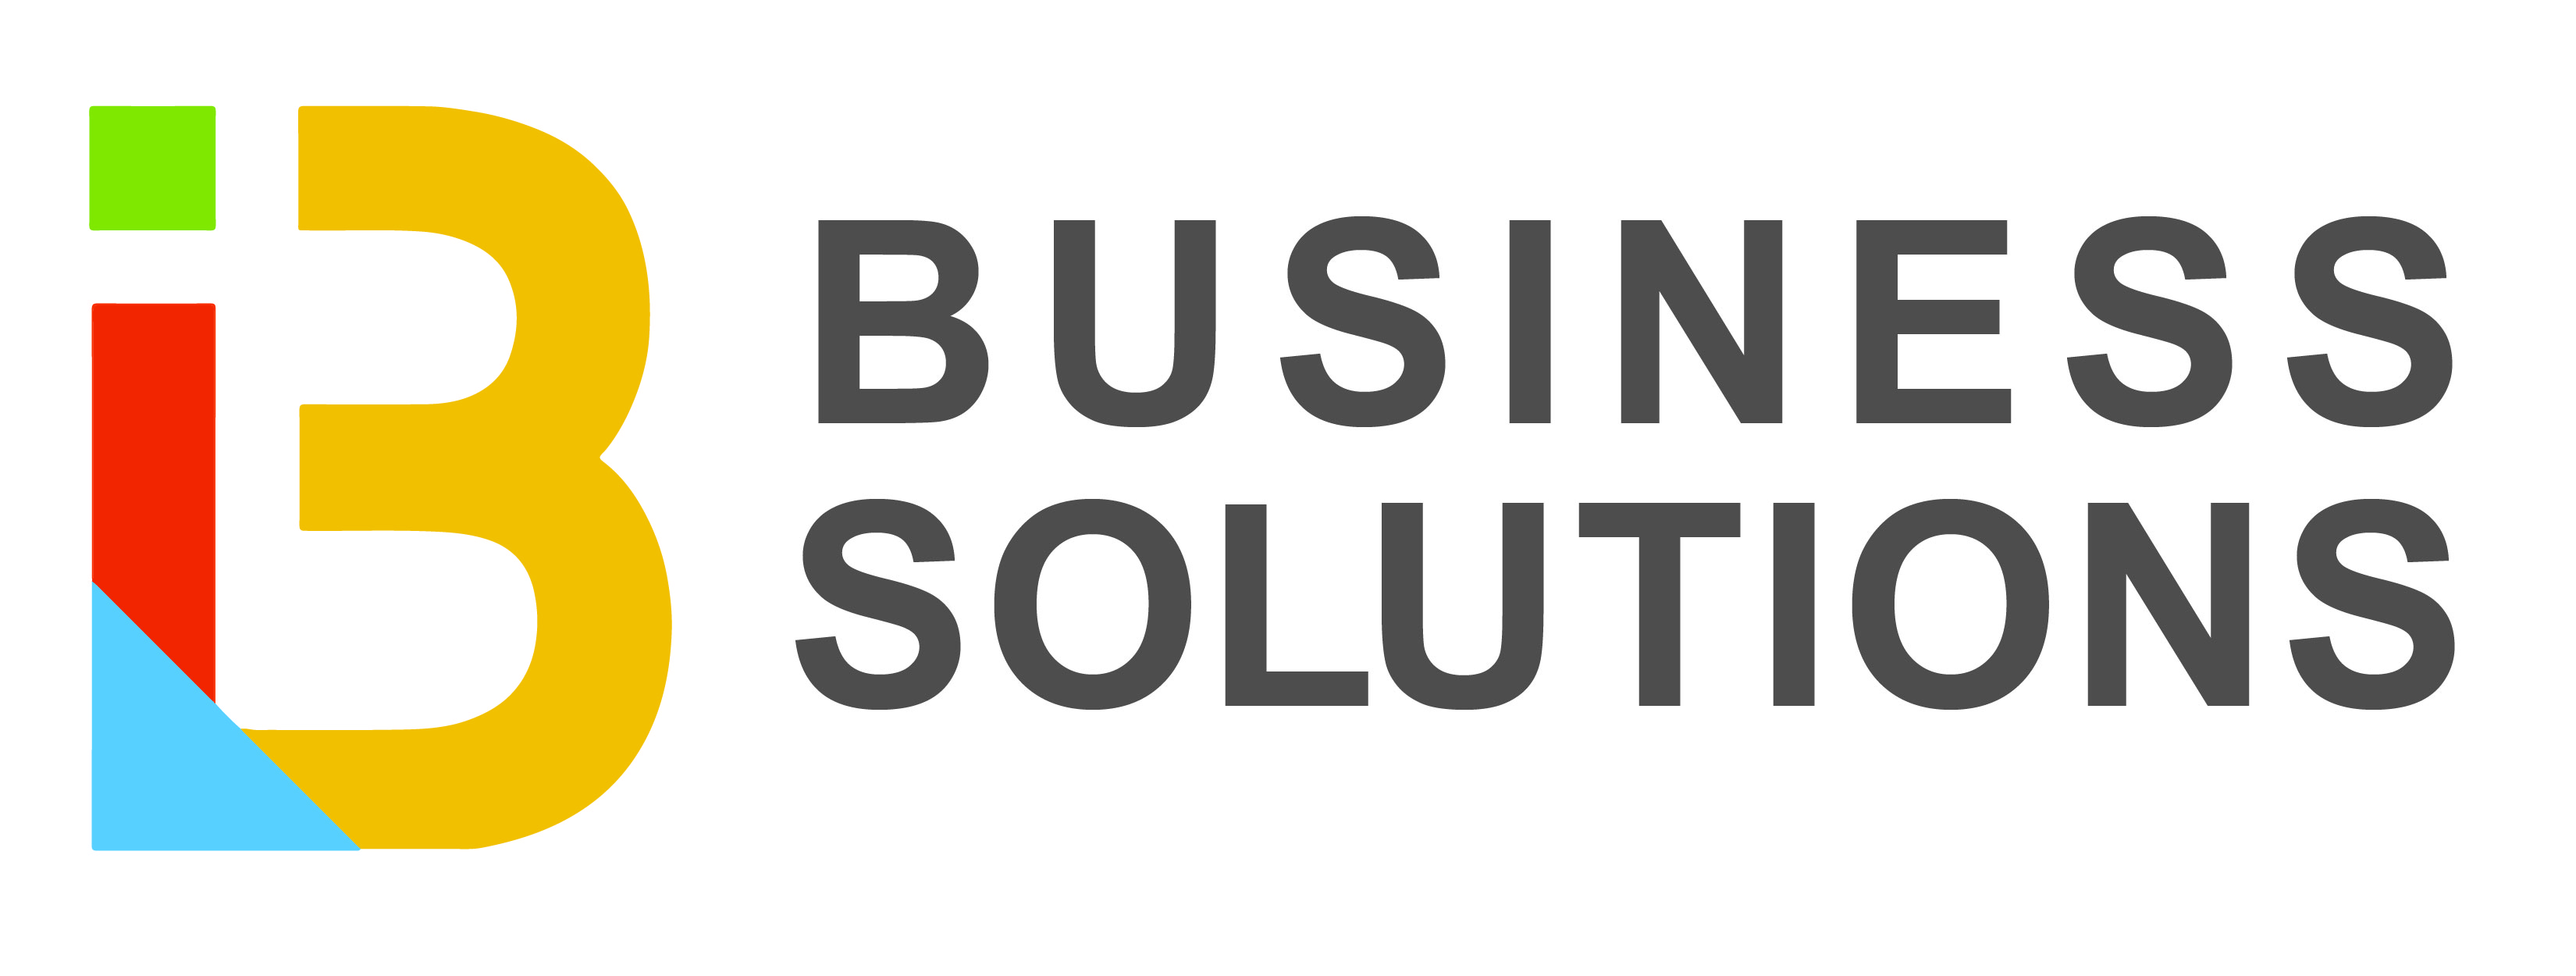 i3 Business Solutions